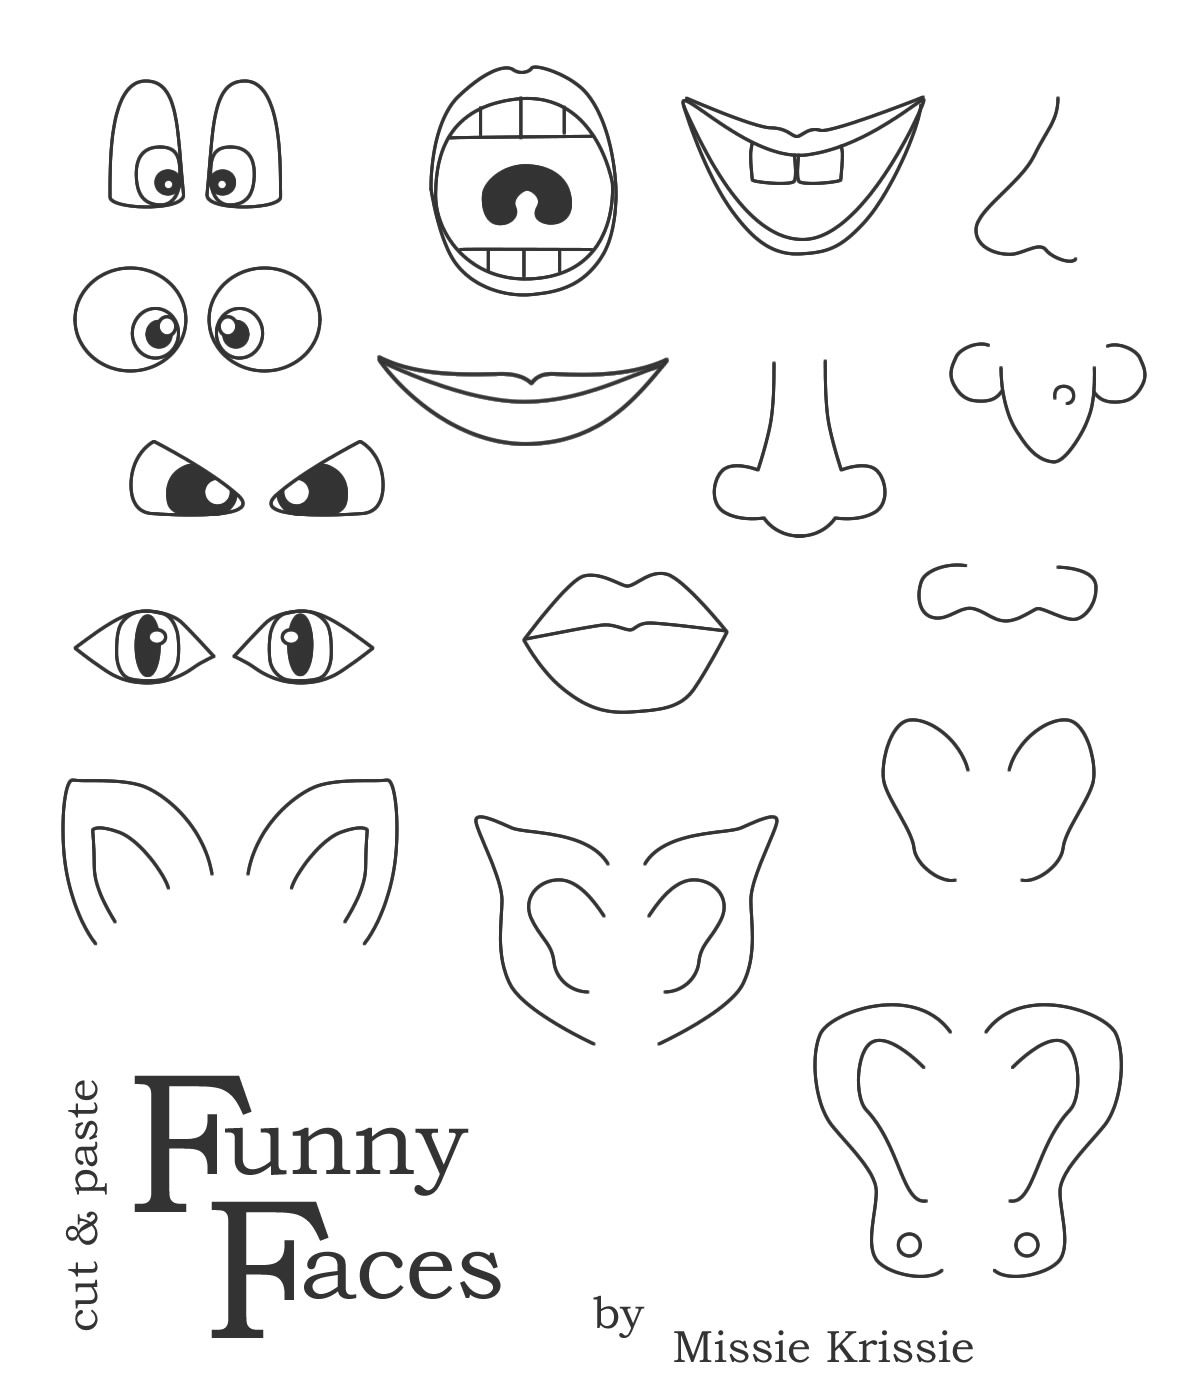 photo about Build a Face Printable titled Pin upon Children